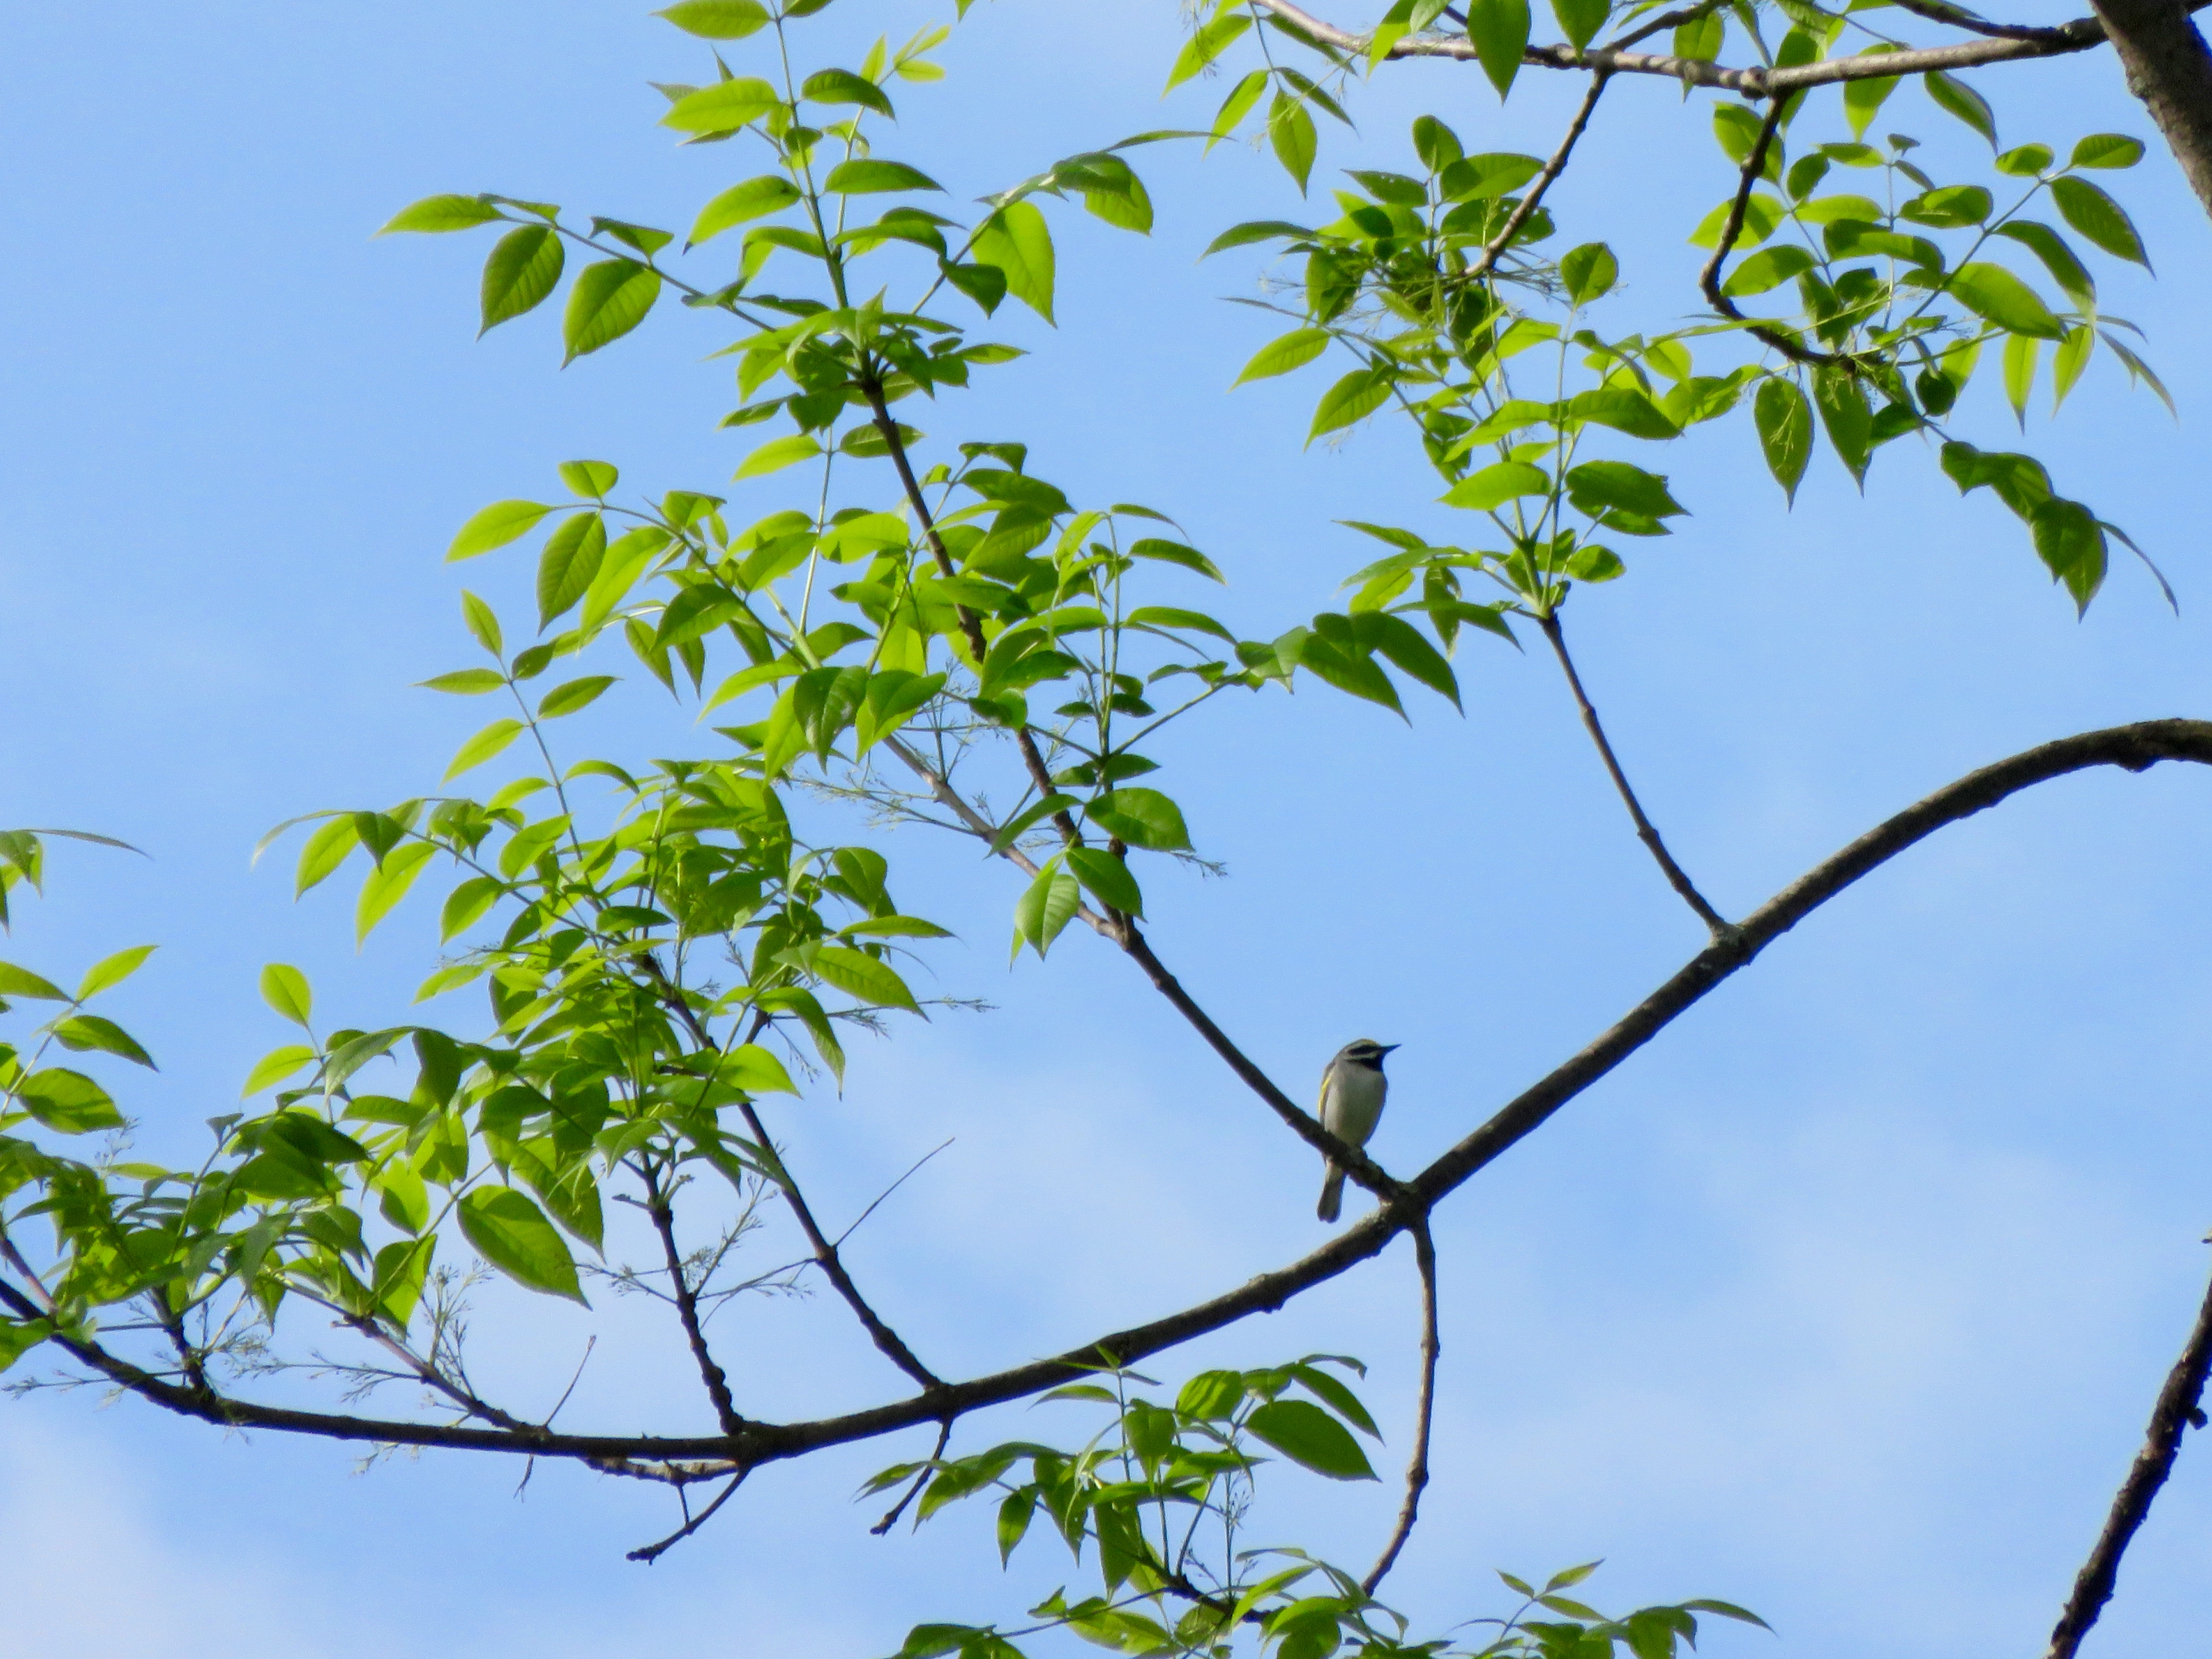 Golden-Winged Warbler welcoming the day with its buzzy song